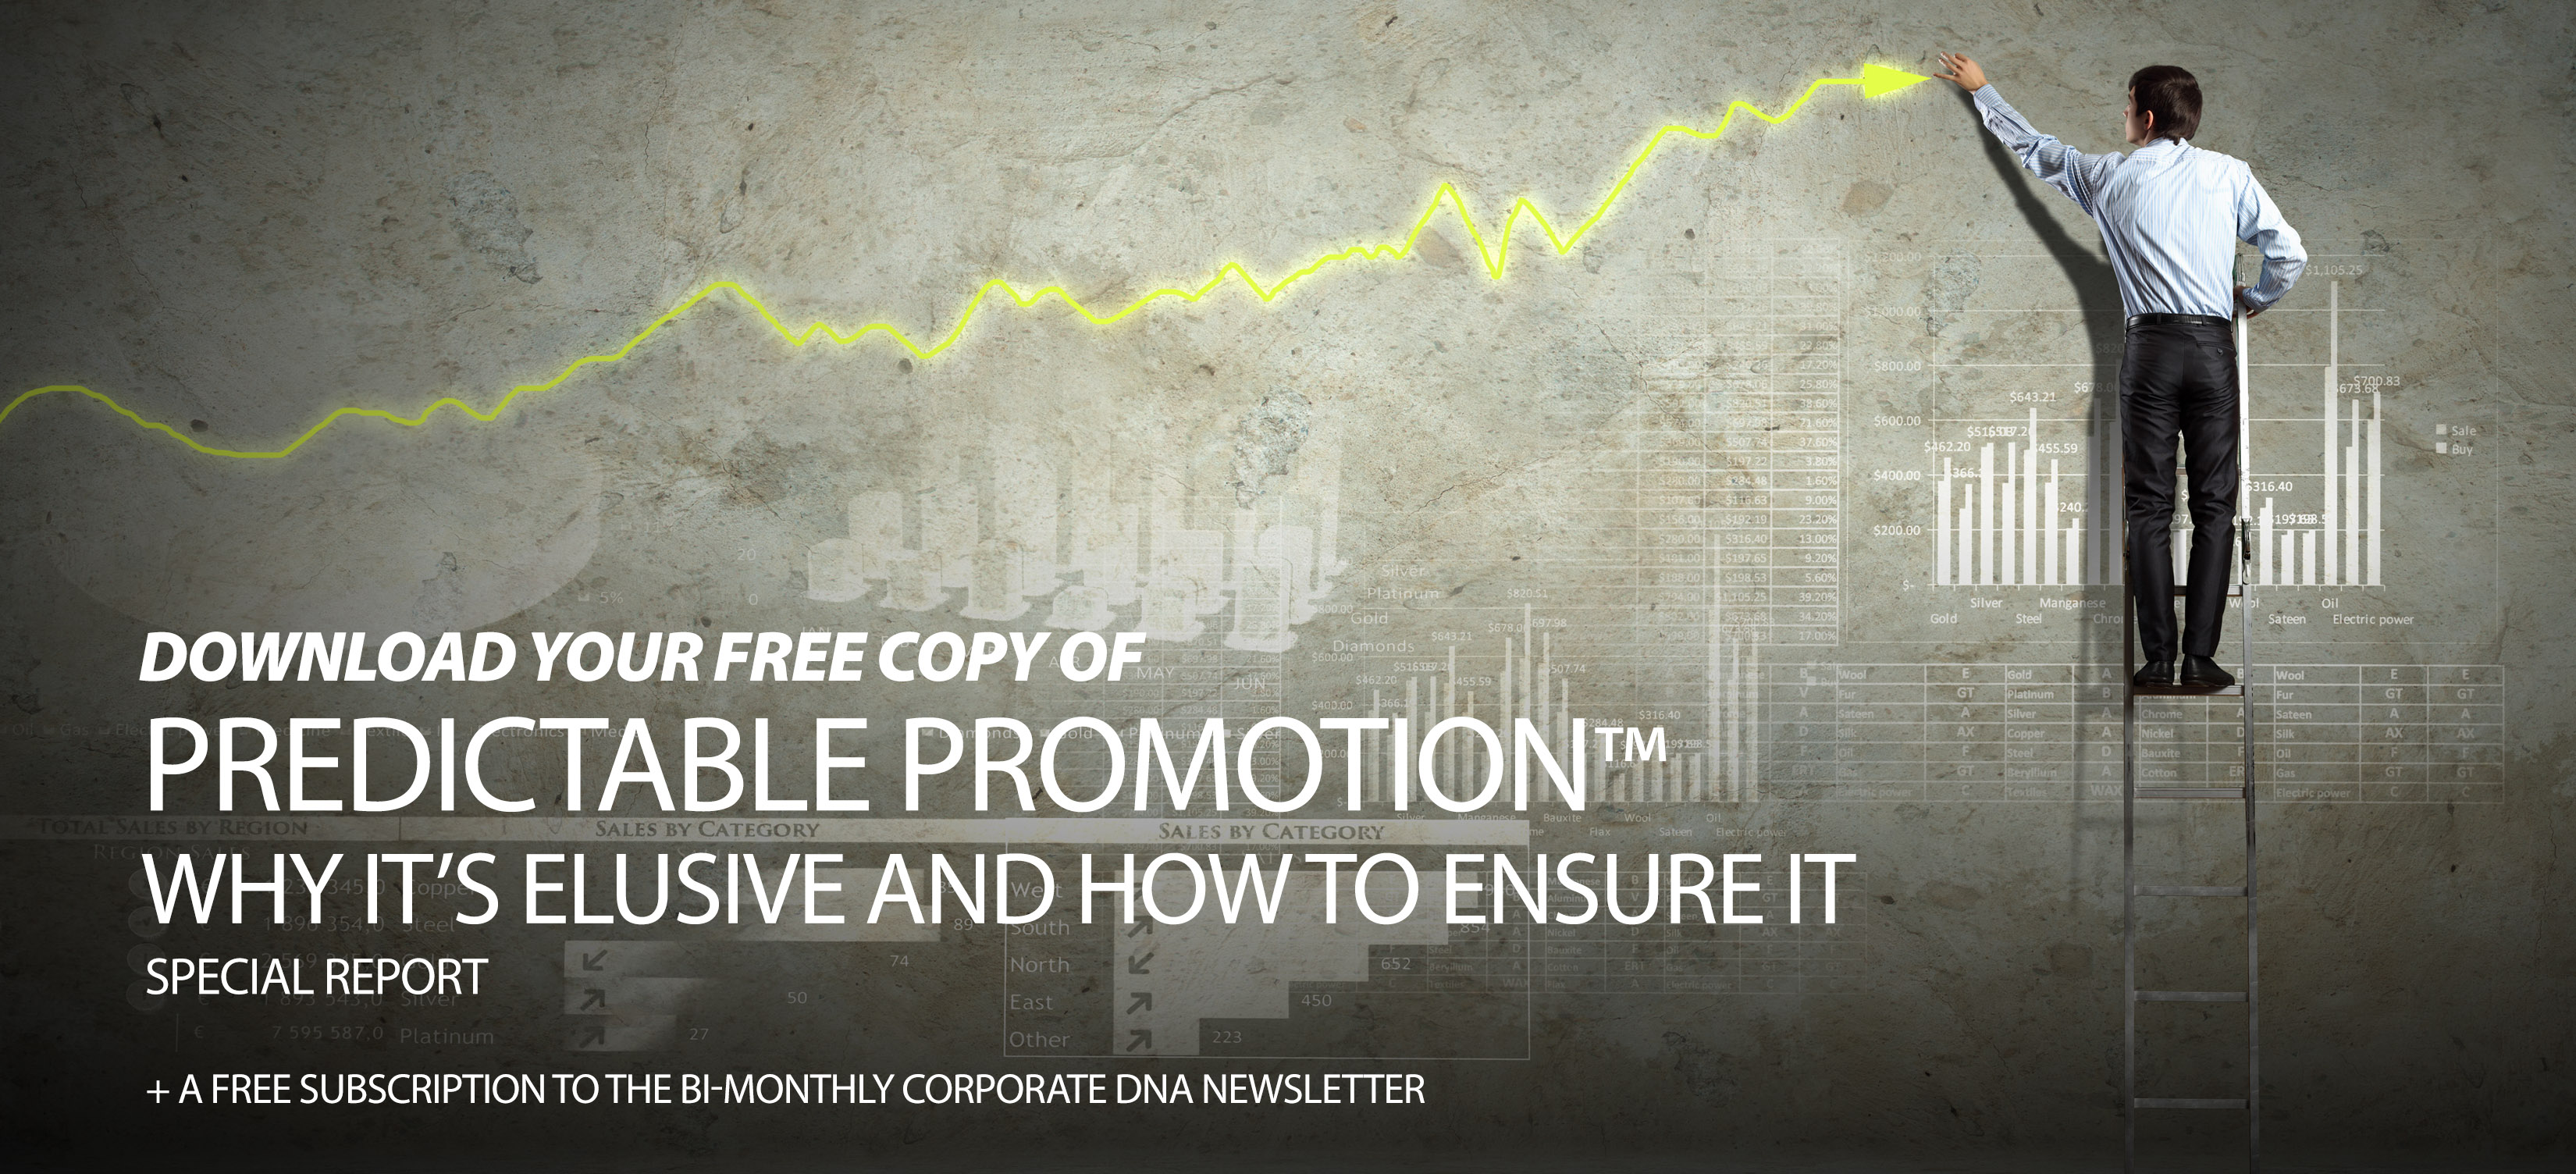 Predictable Promotion Special Report